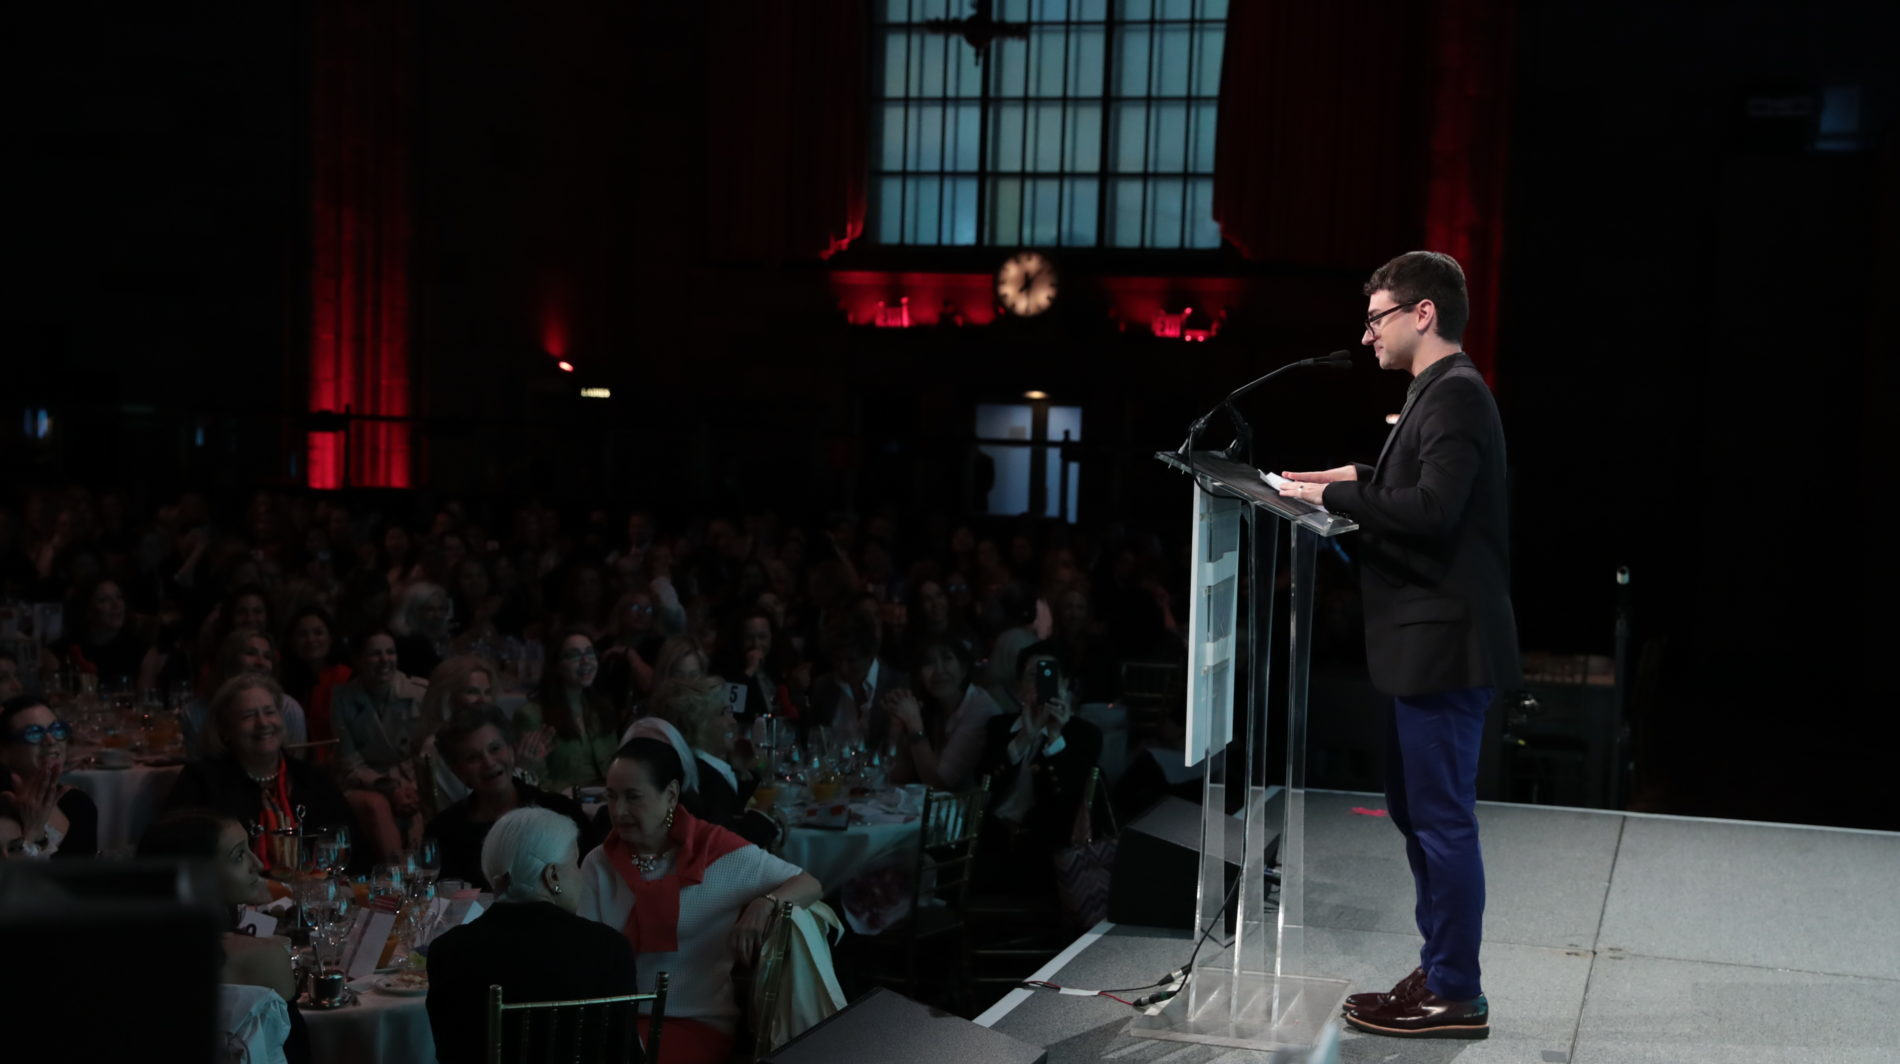 Christian Siriano standing at podium in front of crowd at luncheon